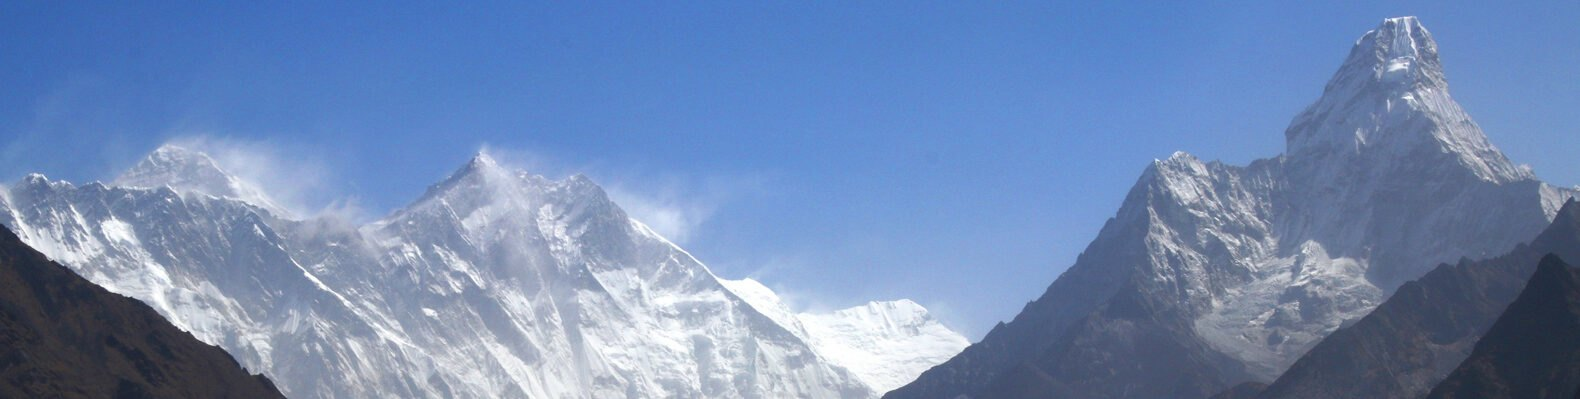 snow-covered Mount Everest